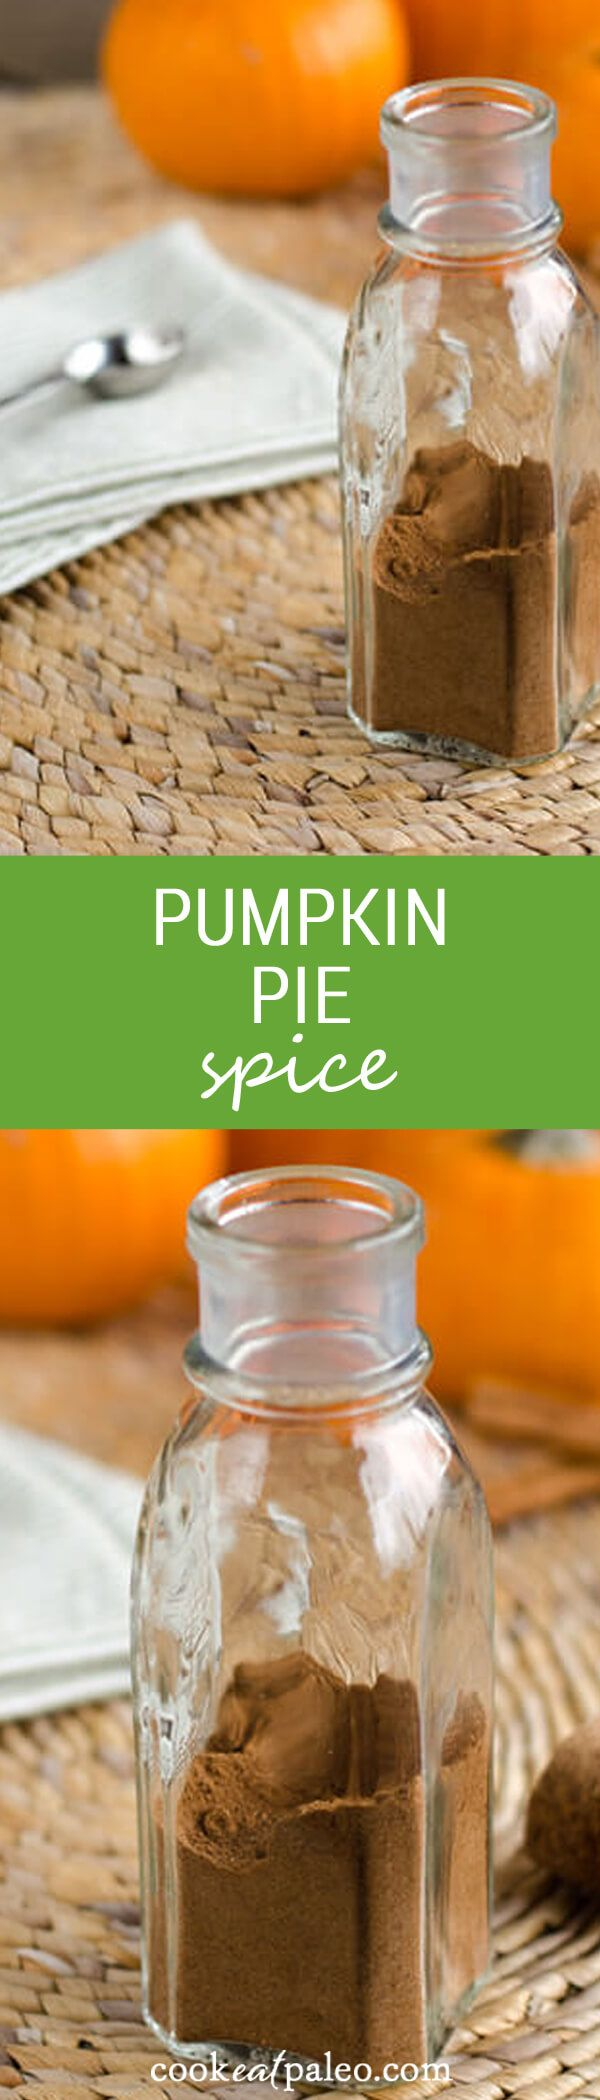 how to cook and eat pumpkin